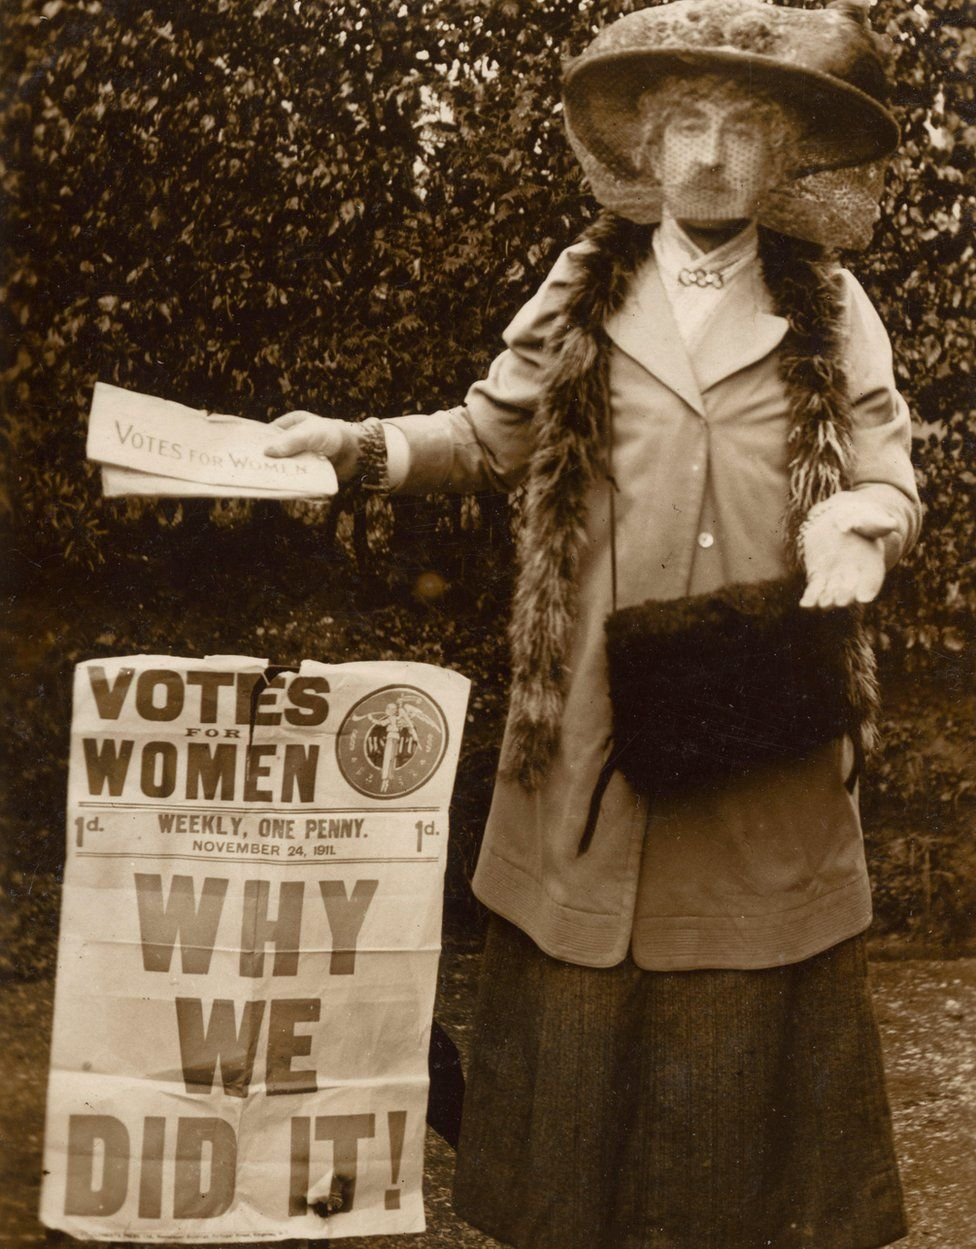 Frederick Lawrence dressed as a female suffragist